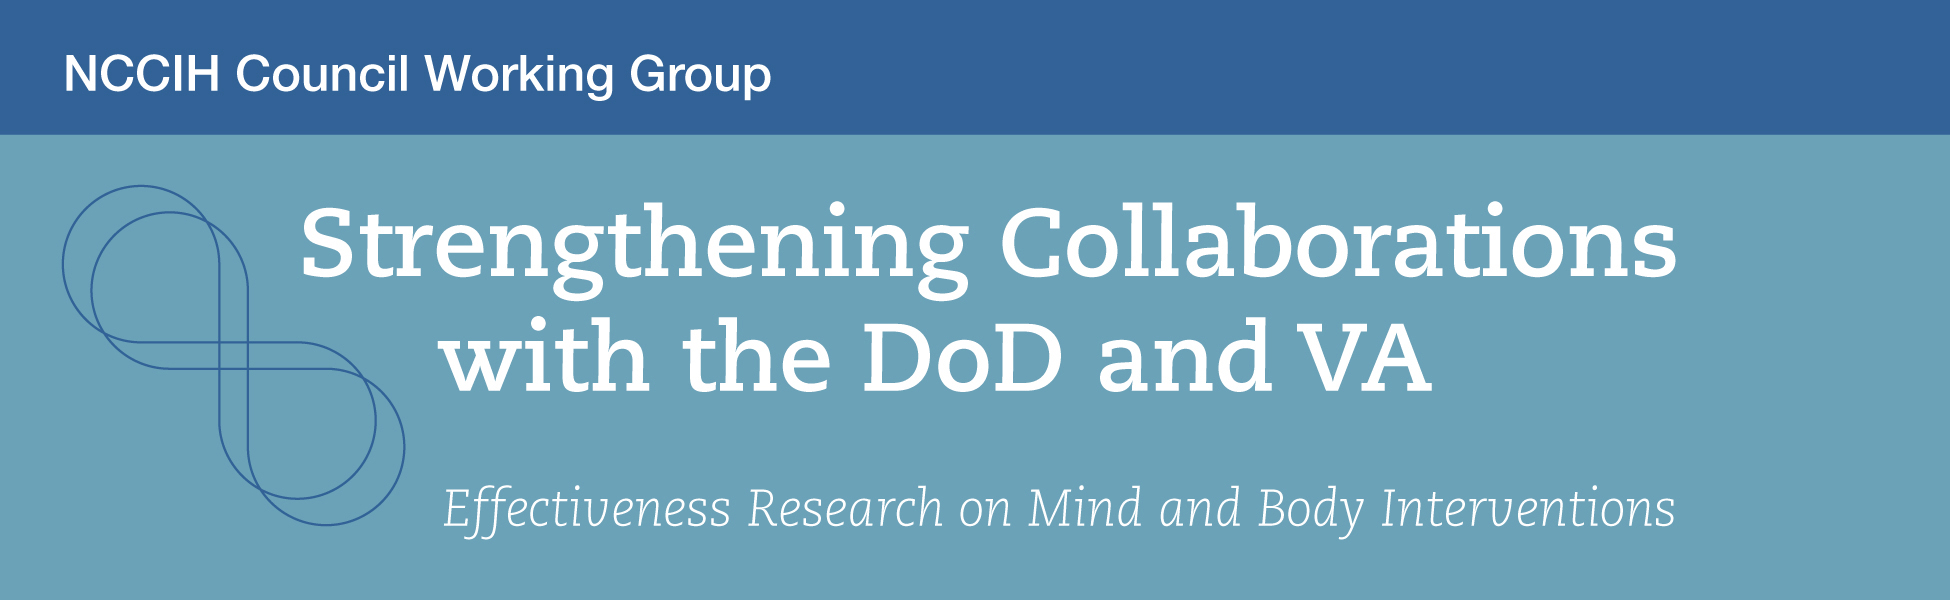 Strengthening Collaborations With the U.S. Department of Defense and U.S. Department of Veterans Affairs: Effectiveness Research on Mind and Body Interventions  A National Advisory Council on Complementary and Integrative Health (NACCIH) Working Group Report